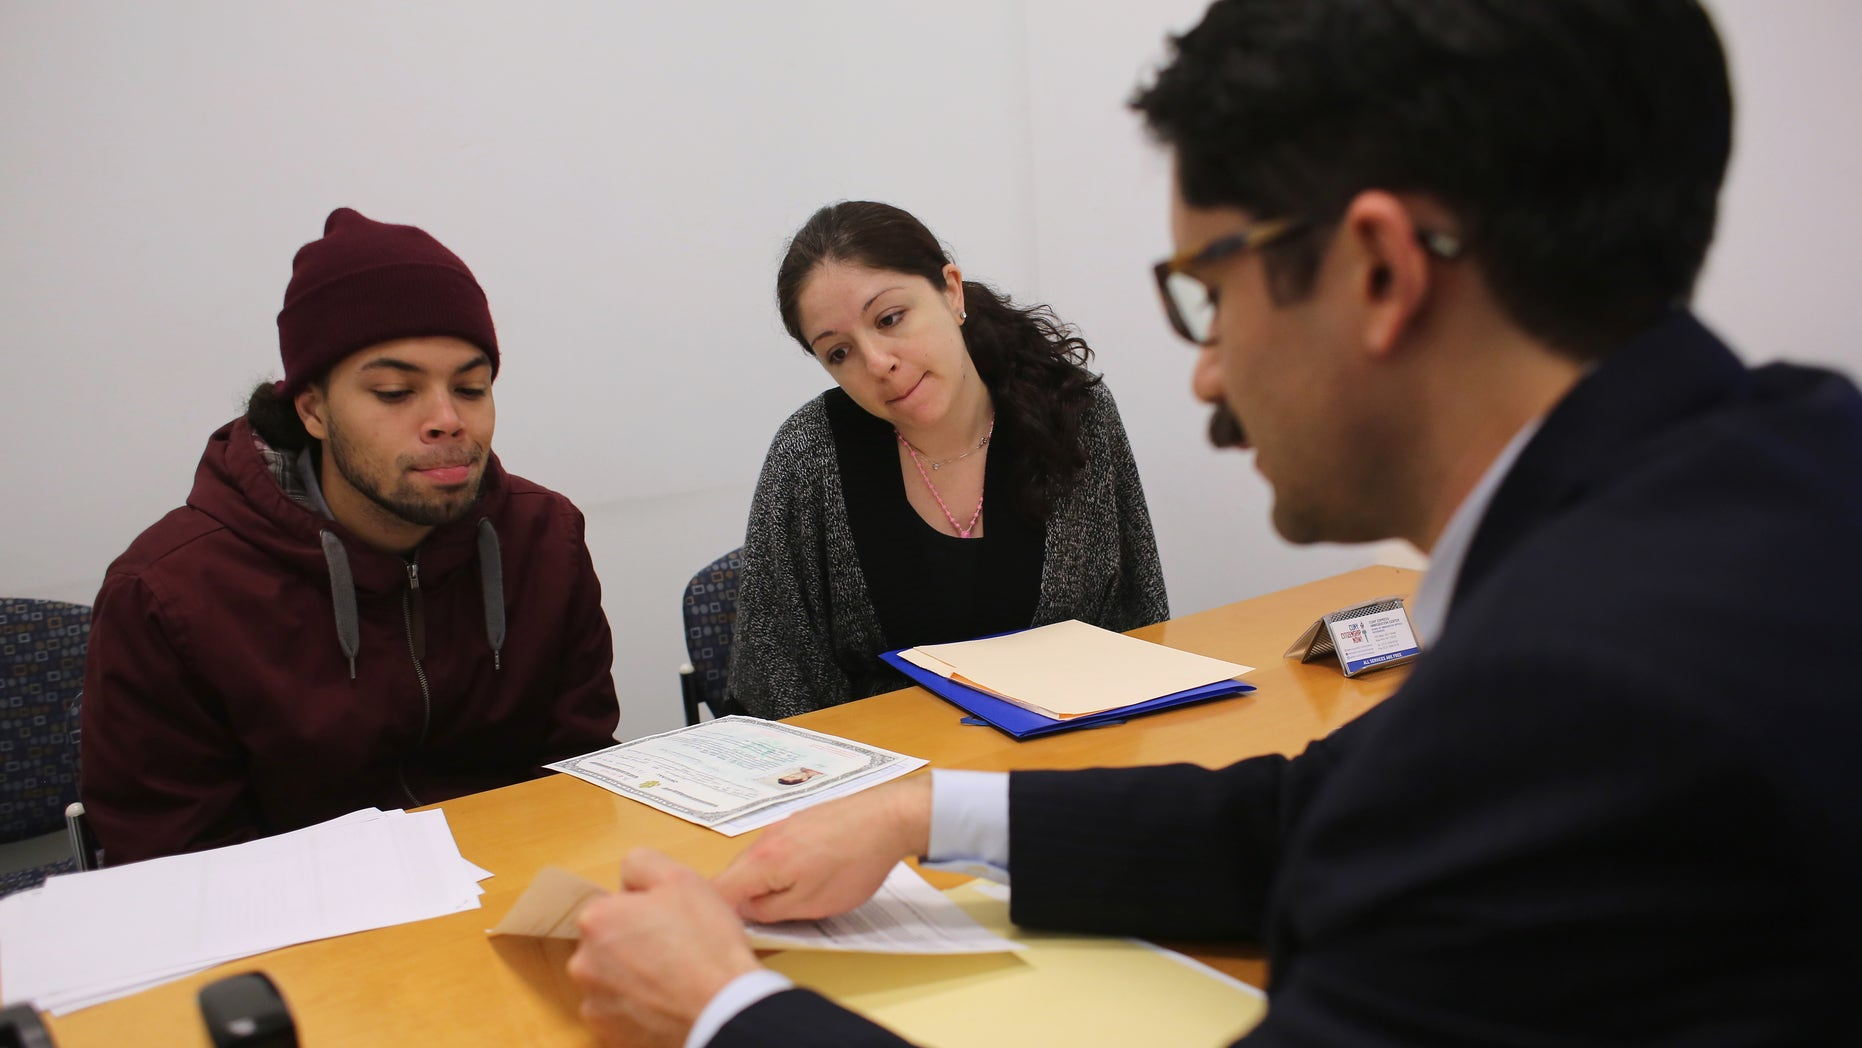 "NEW YORK, NY - JANUARY 31:  Immigration lawyer Andres Lemons advises Angel and Evie Gomez on their U.S. citizenship application on January 31, 2013 in New York City. The married couple, he from the Dominican Republic, and she from Canada are soon to have a baby and are working through the long process to become U.S. citizens. Lemons works at the CUNY Citizenship Now ""Express Center"" in New York's Washington Heights. The non-profit helps some 8,000 immigrants in the New York area navigate through the complicated process of acquiring U.S. Citizenship and provides free legal information for the immigrant community. (Photo by John Moore/Getty Images)"